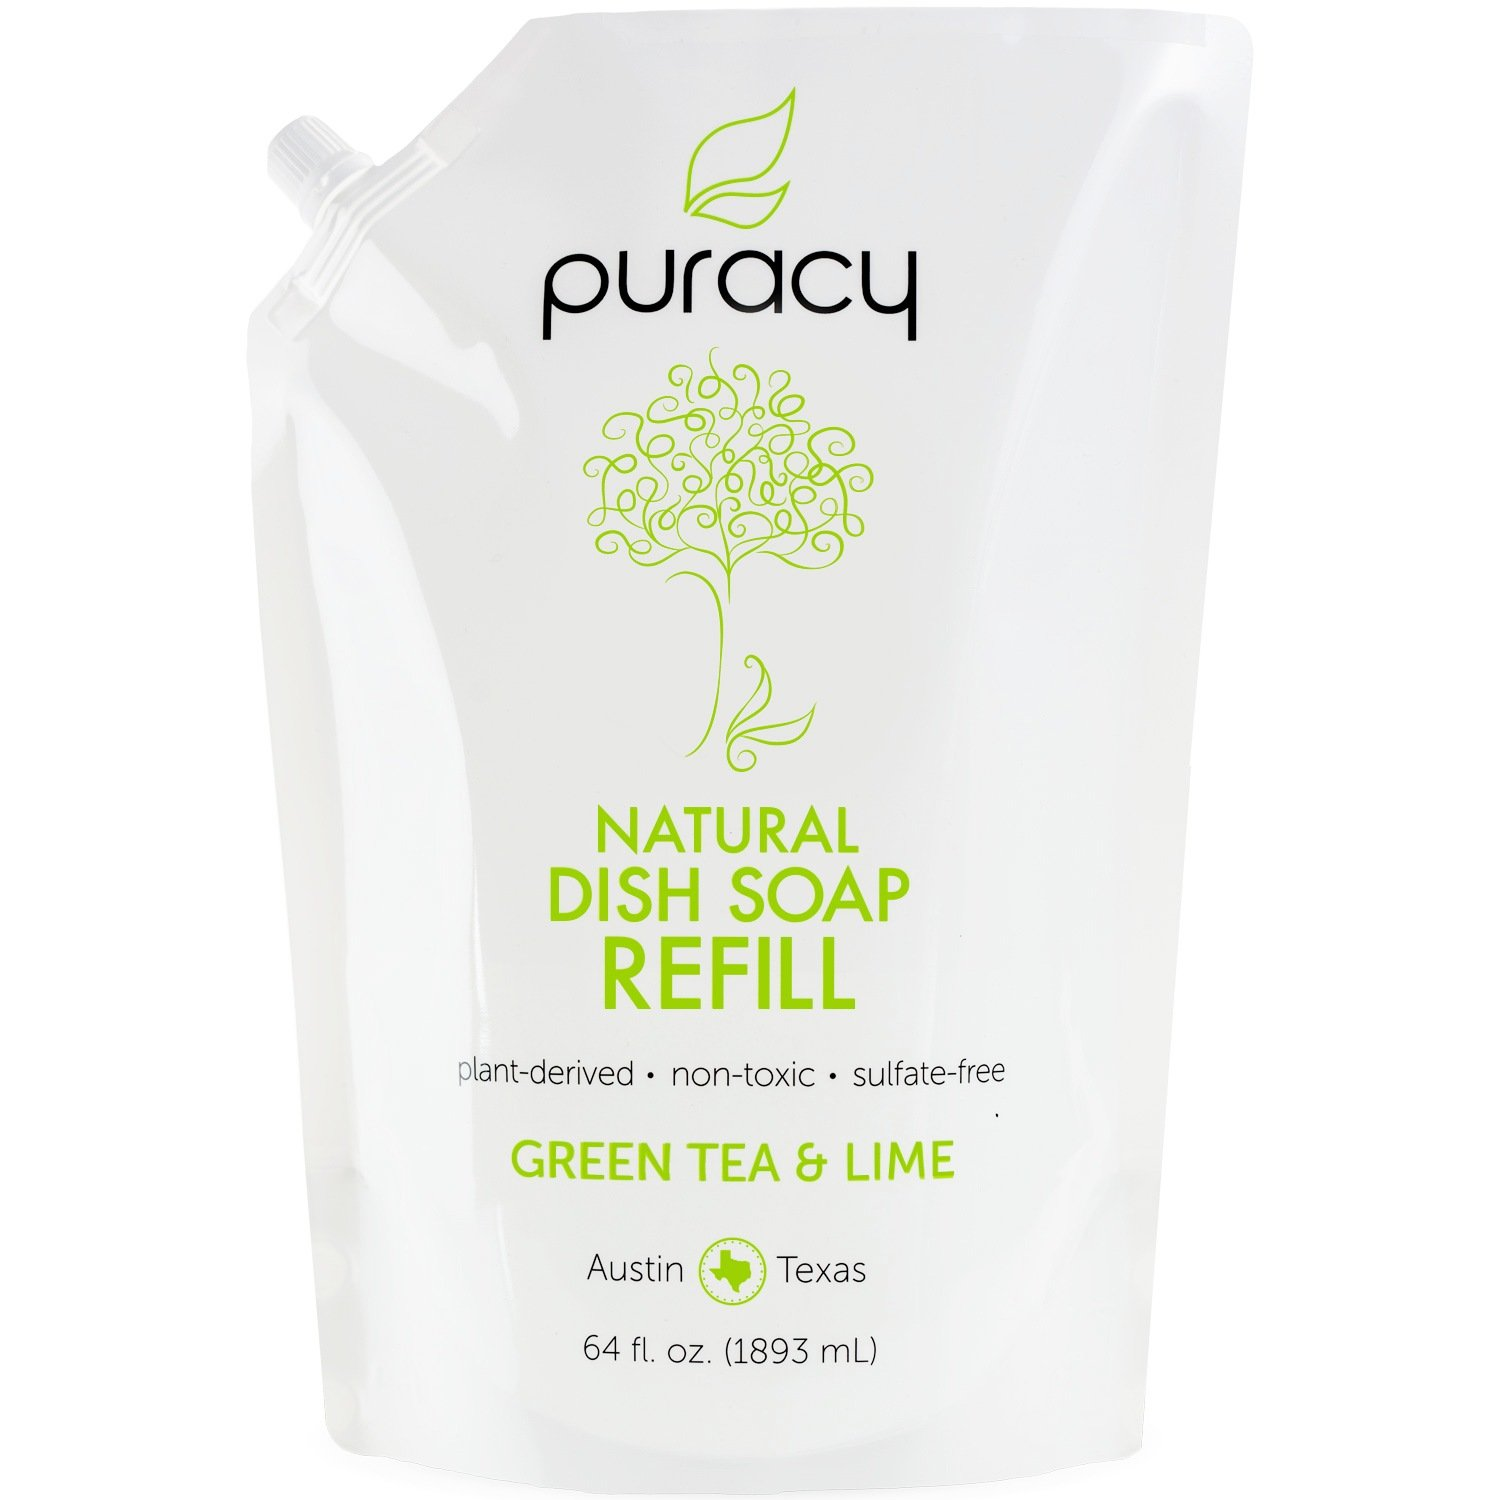 Puracy Natural Liquid Dish Soap Refill, Sulfate-Free Dishwashing Detergent, Green Tea & Lime, 1893 mL